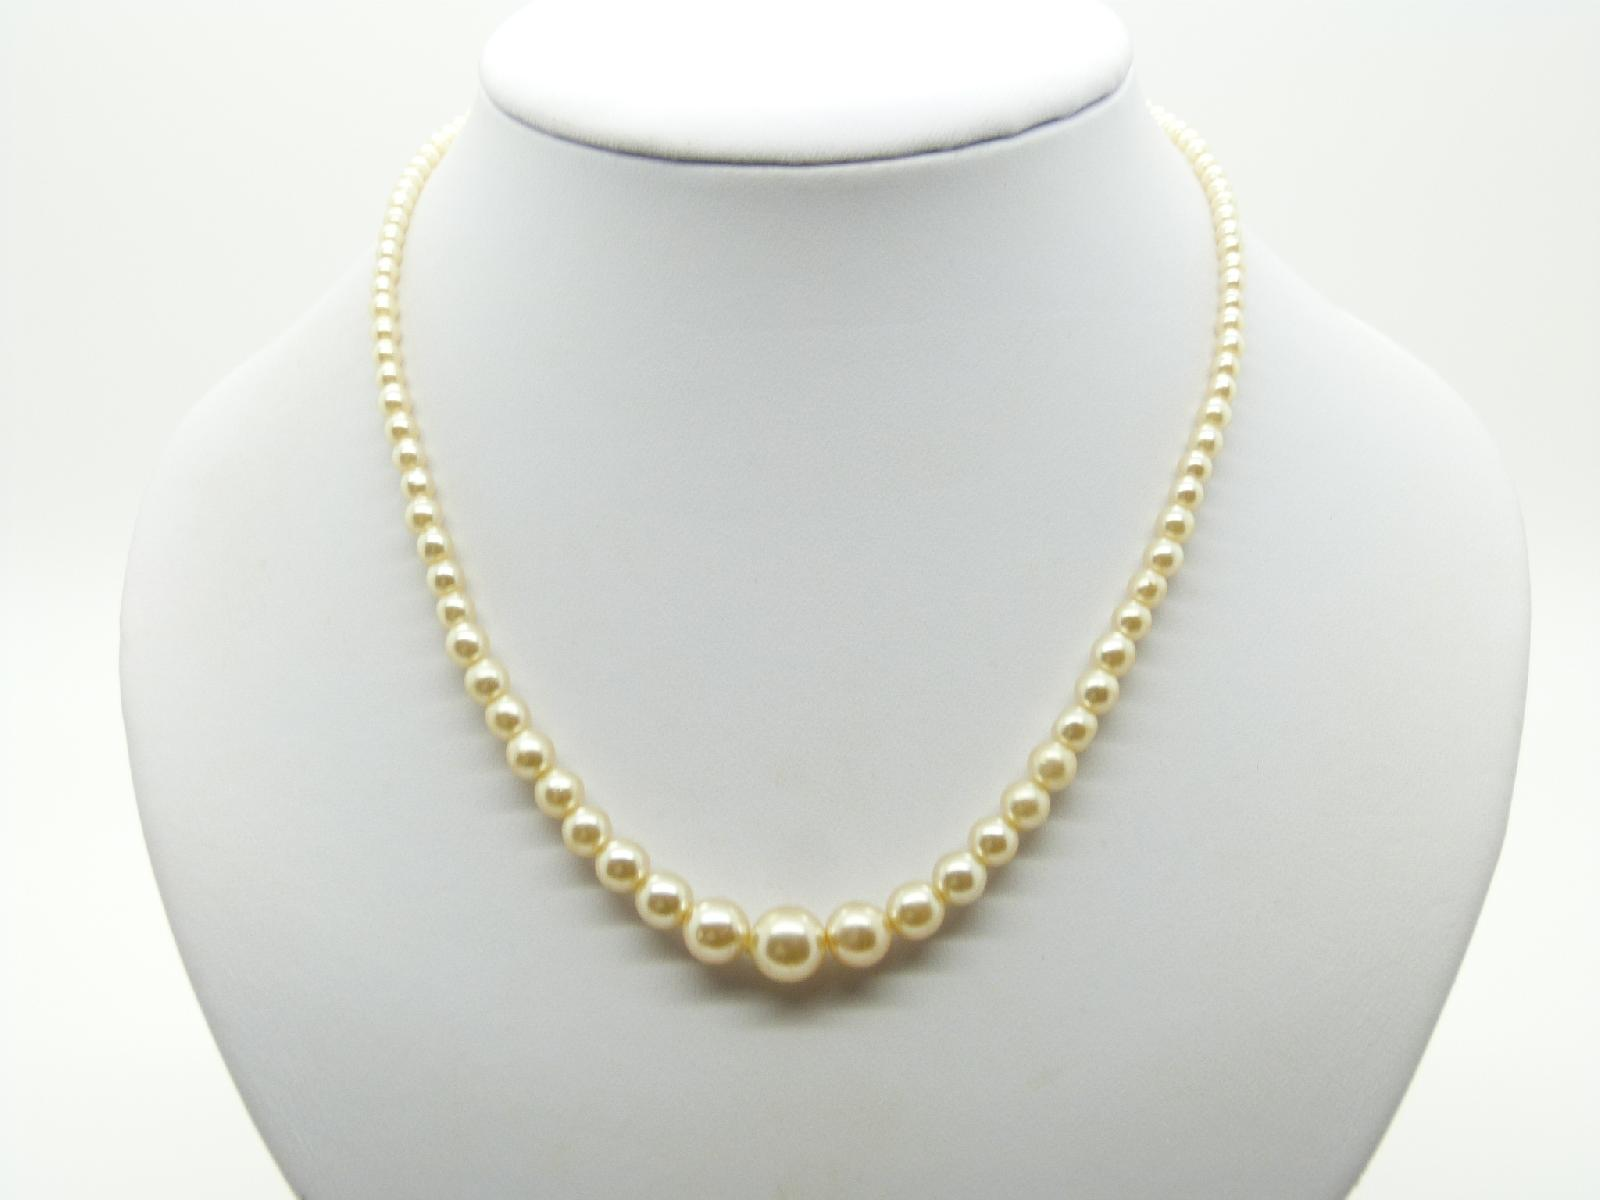 £10.00 - Vintage 30s Pretty Glass Faux Pearl Bead Graduating Necklace 65cms